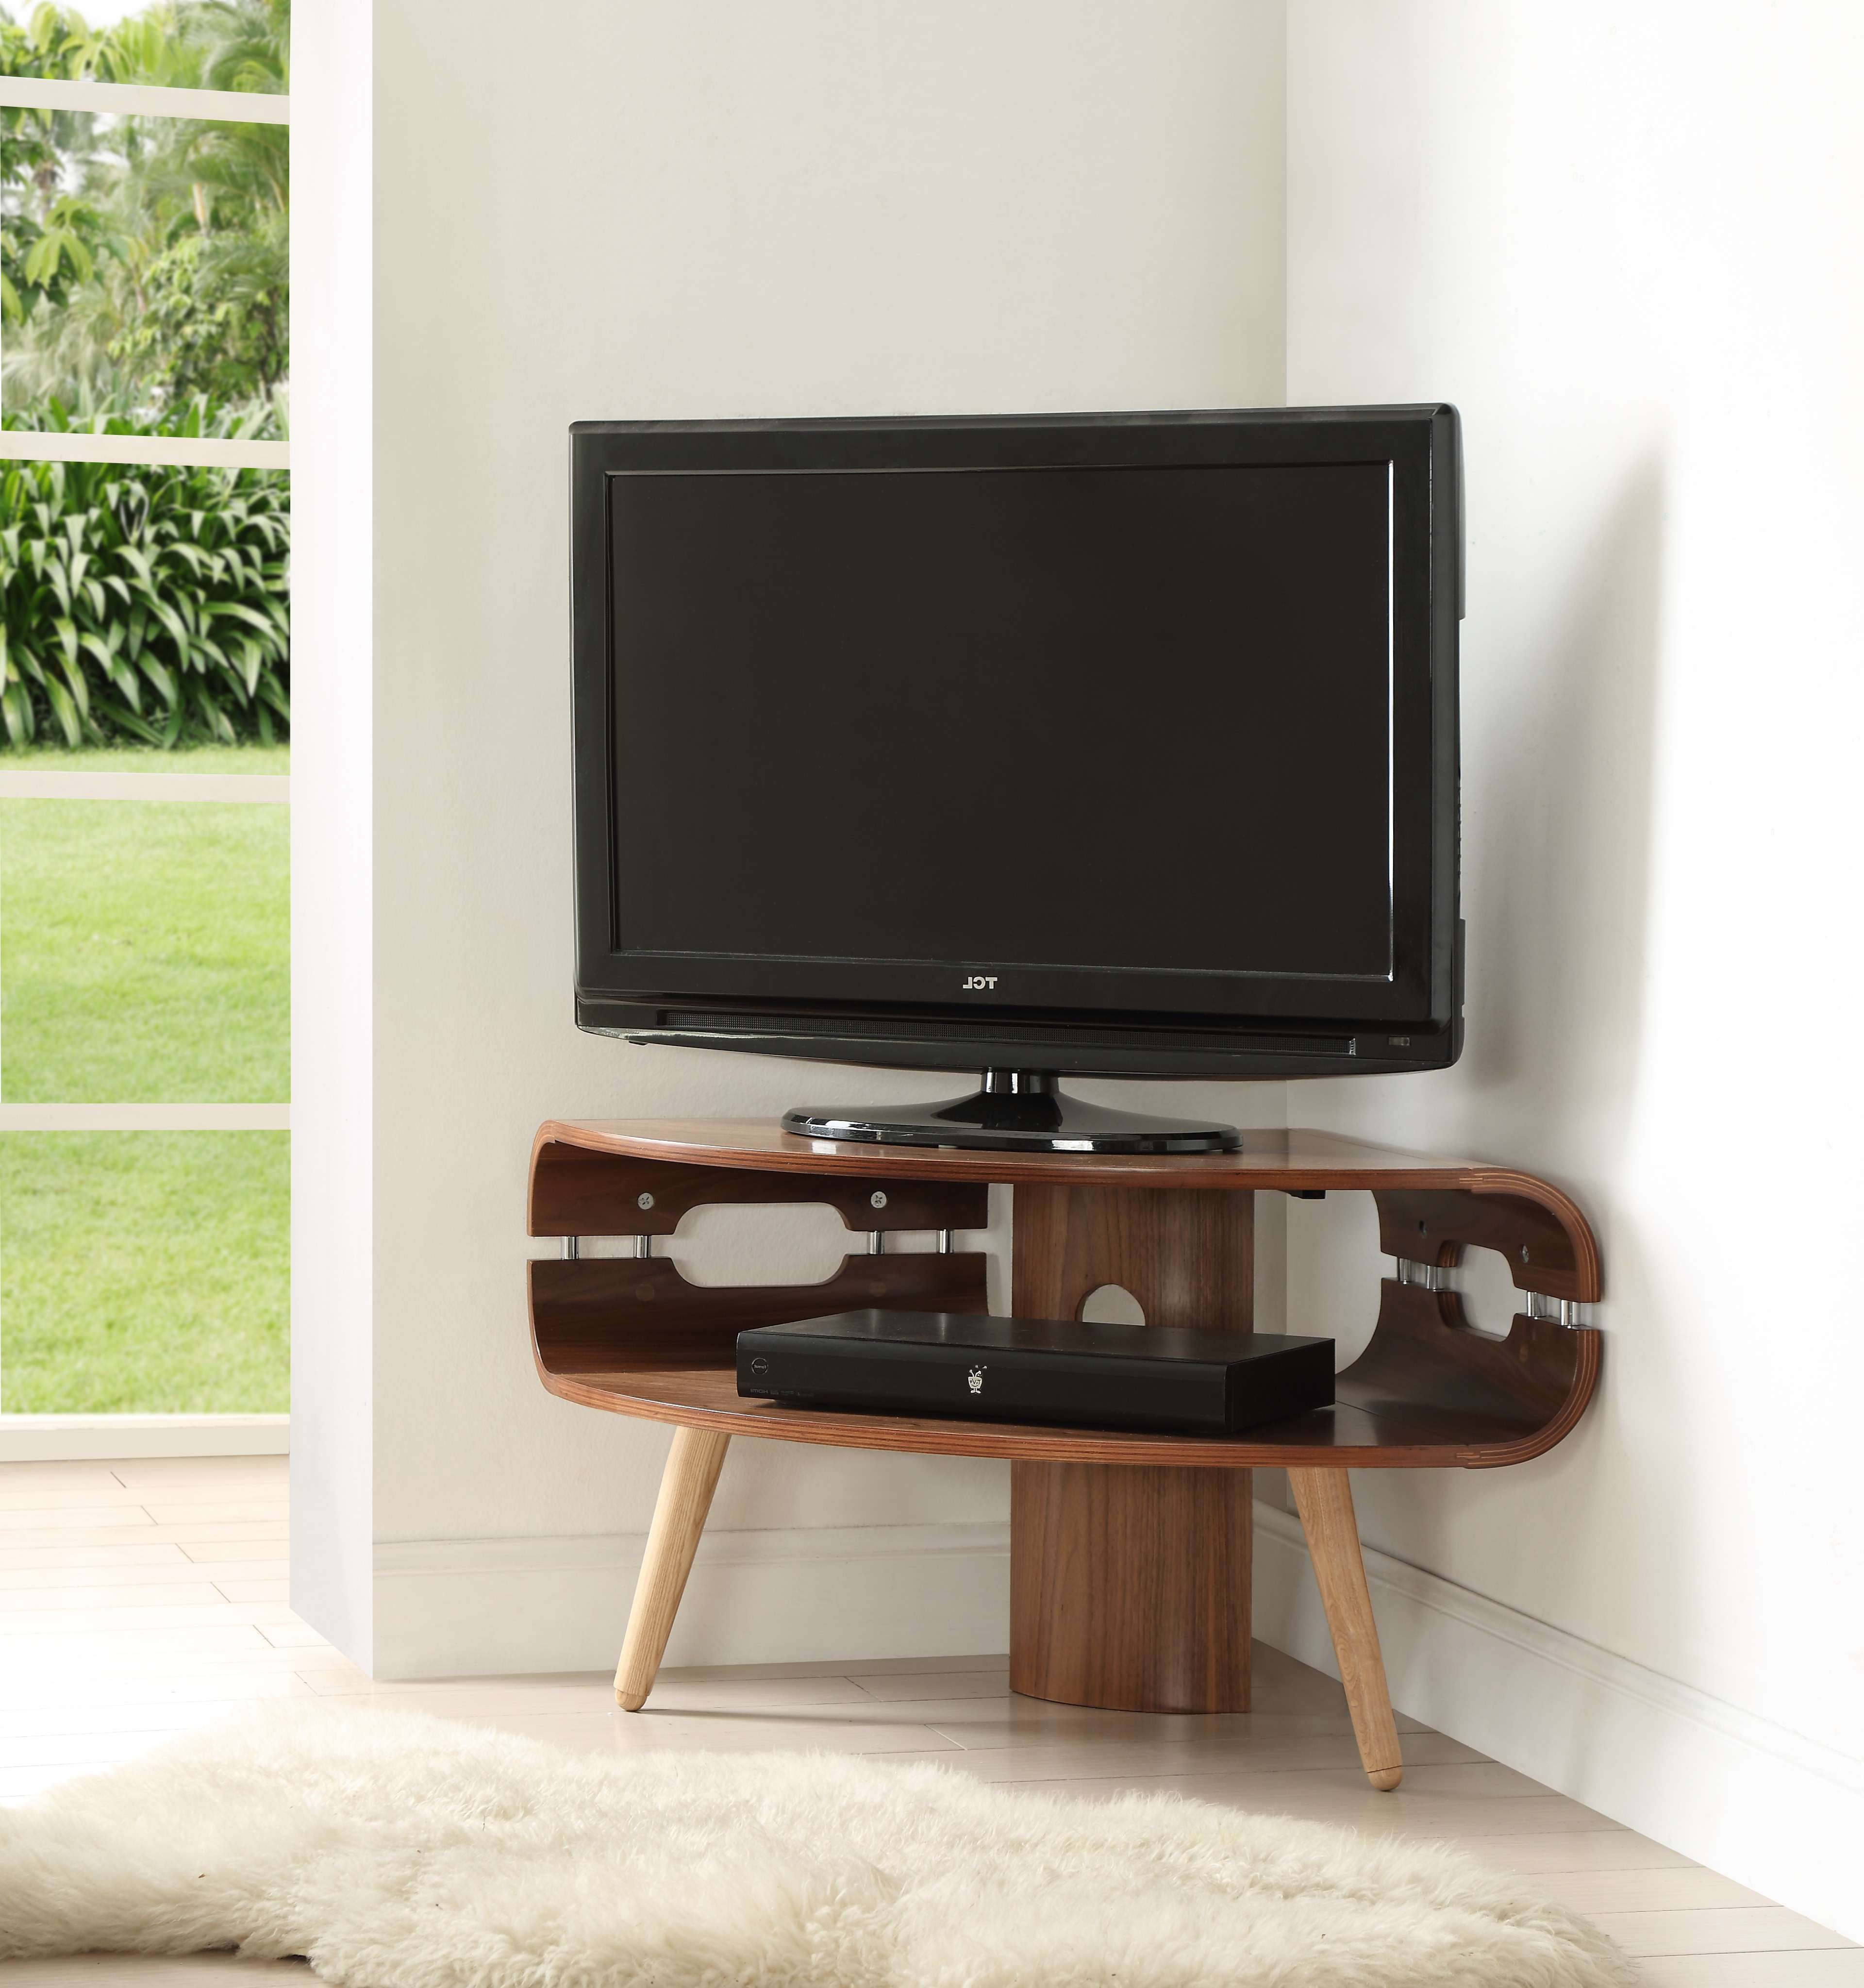 Jf701 Corner Tv Stand – Cooks Pertaining To Small Corner Tv Stands (Gallery 2 of 20)